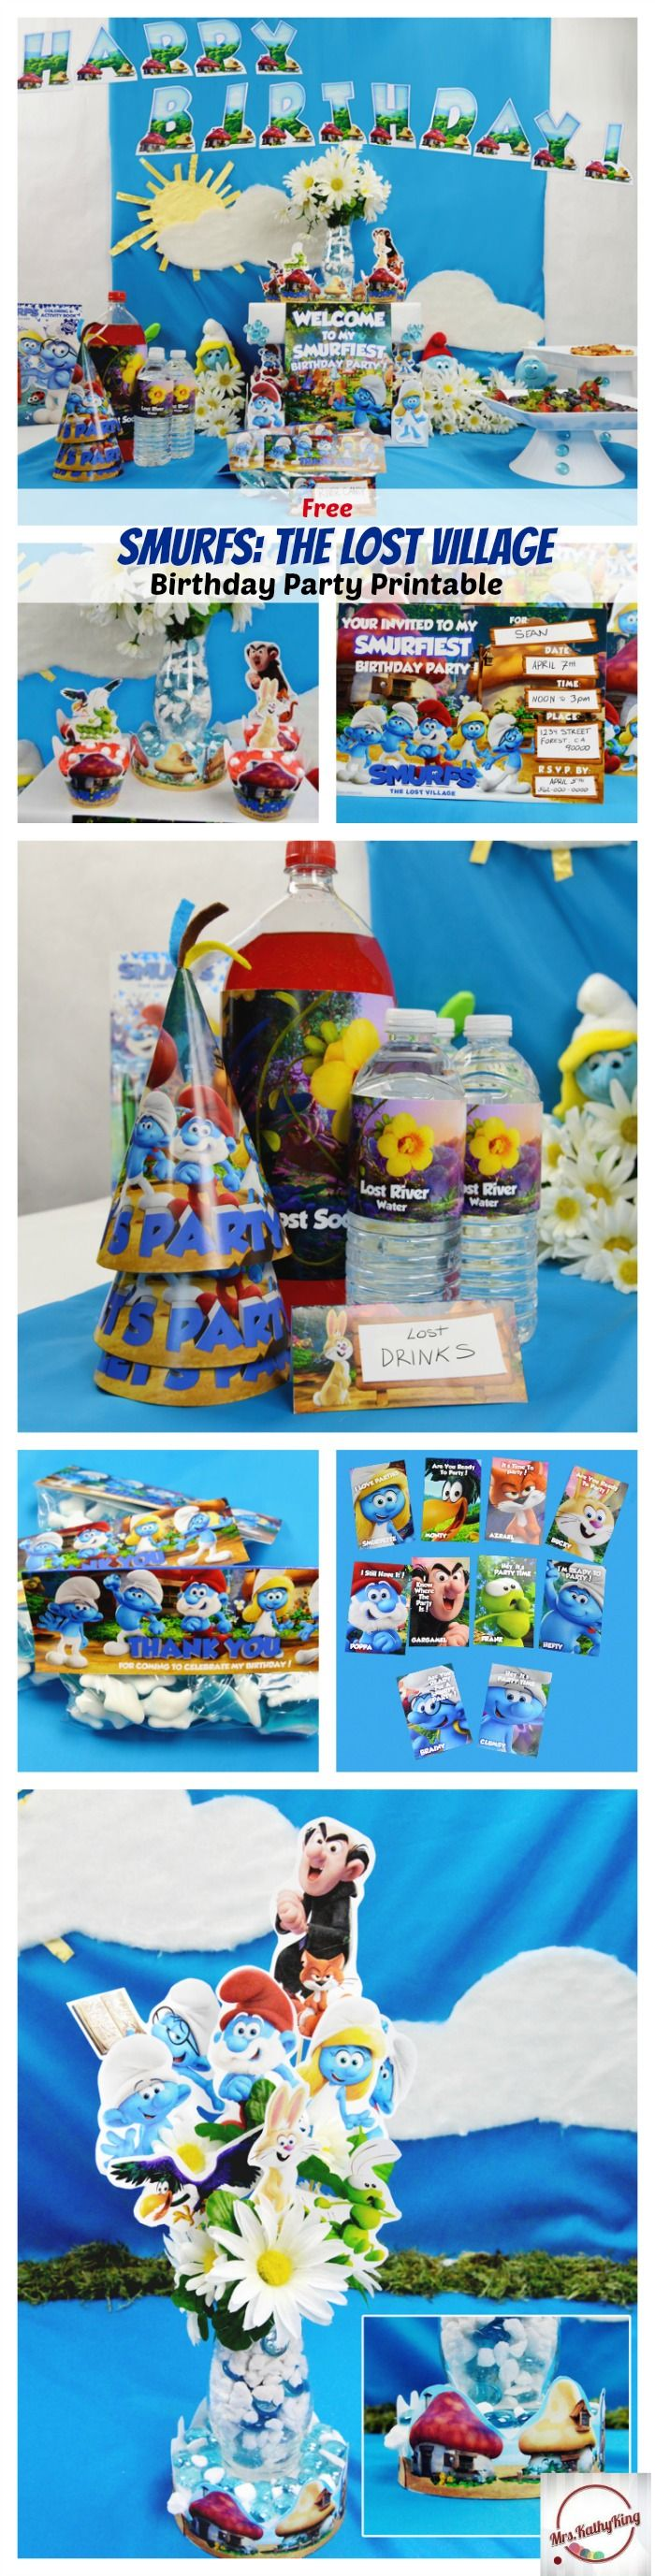 Free Smurfs The Lost Village Printable Party Decorations